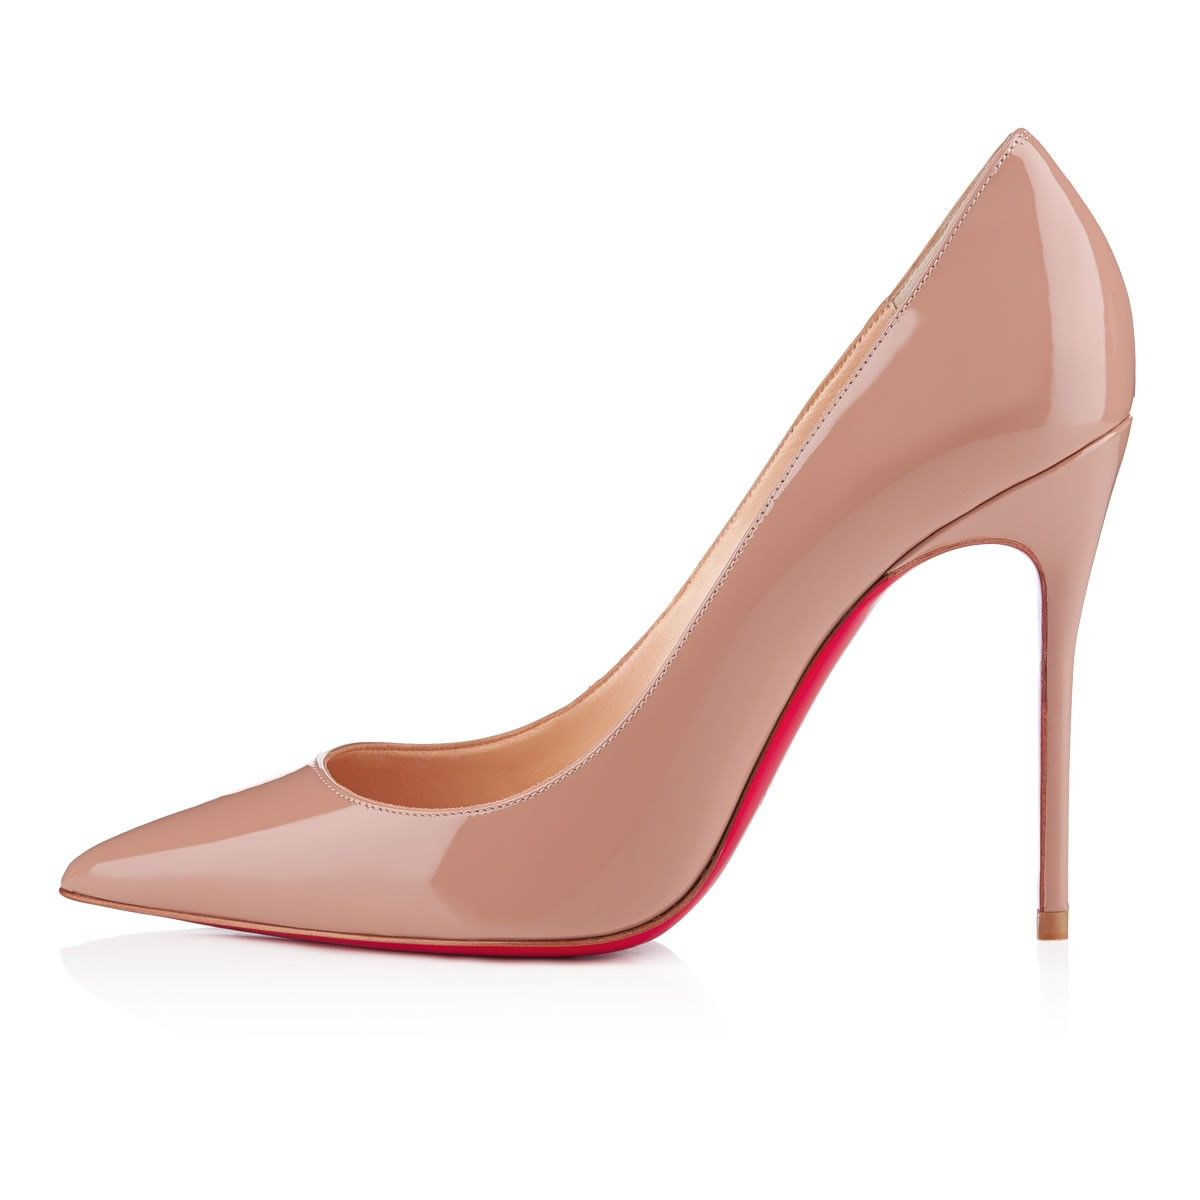 69059c0eae21 New Simple Pump 85 NUDE Patent Leather - Women Shoes - Christian Louboutin